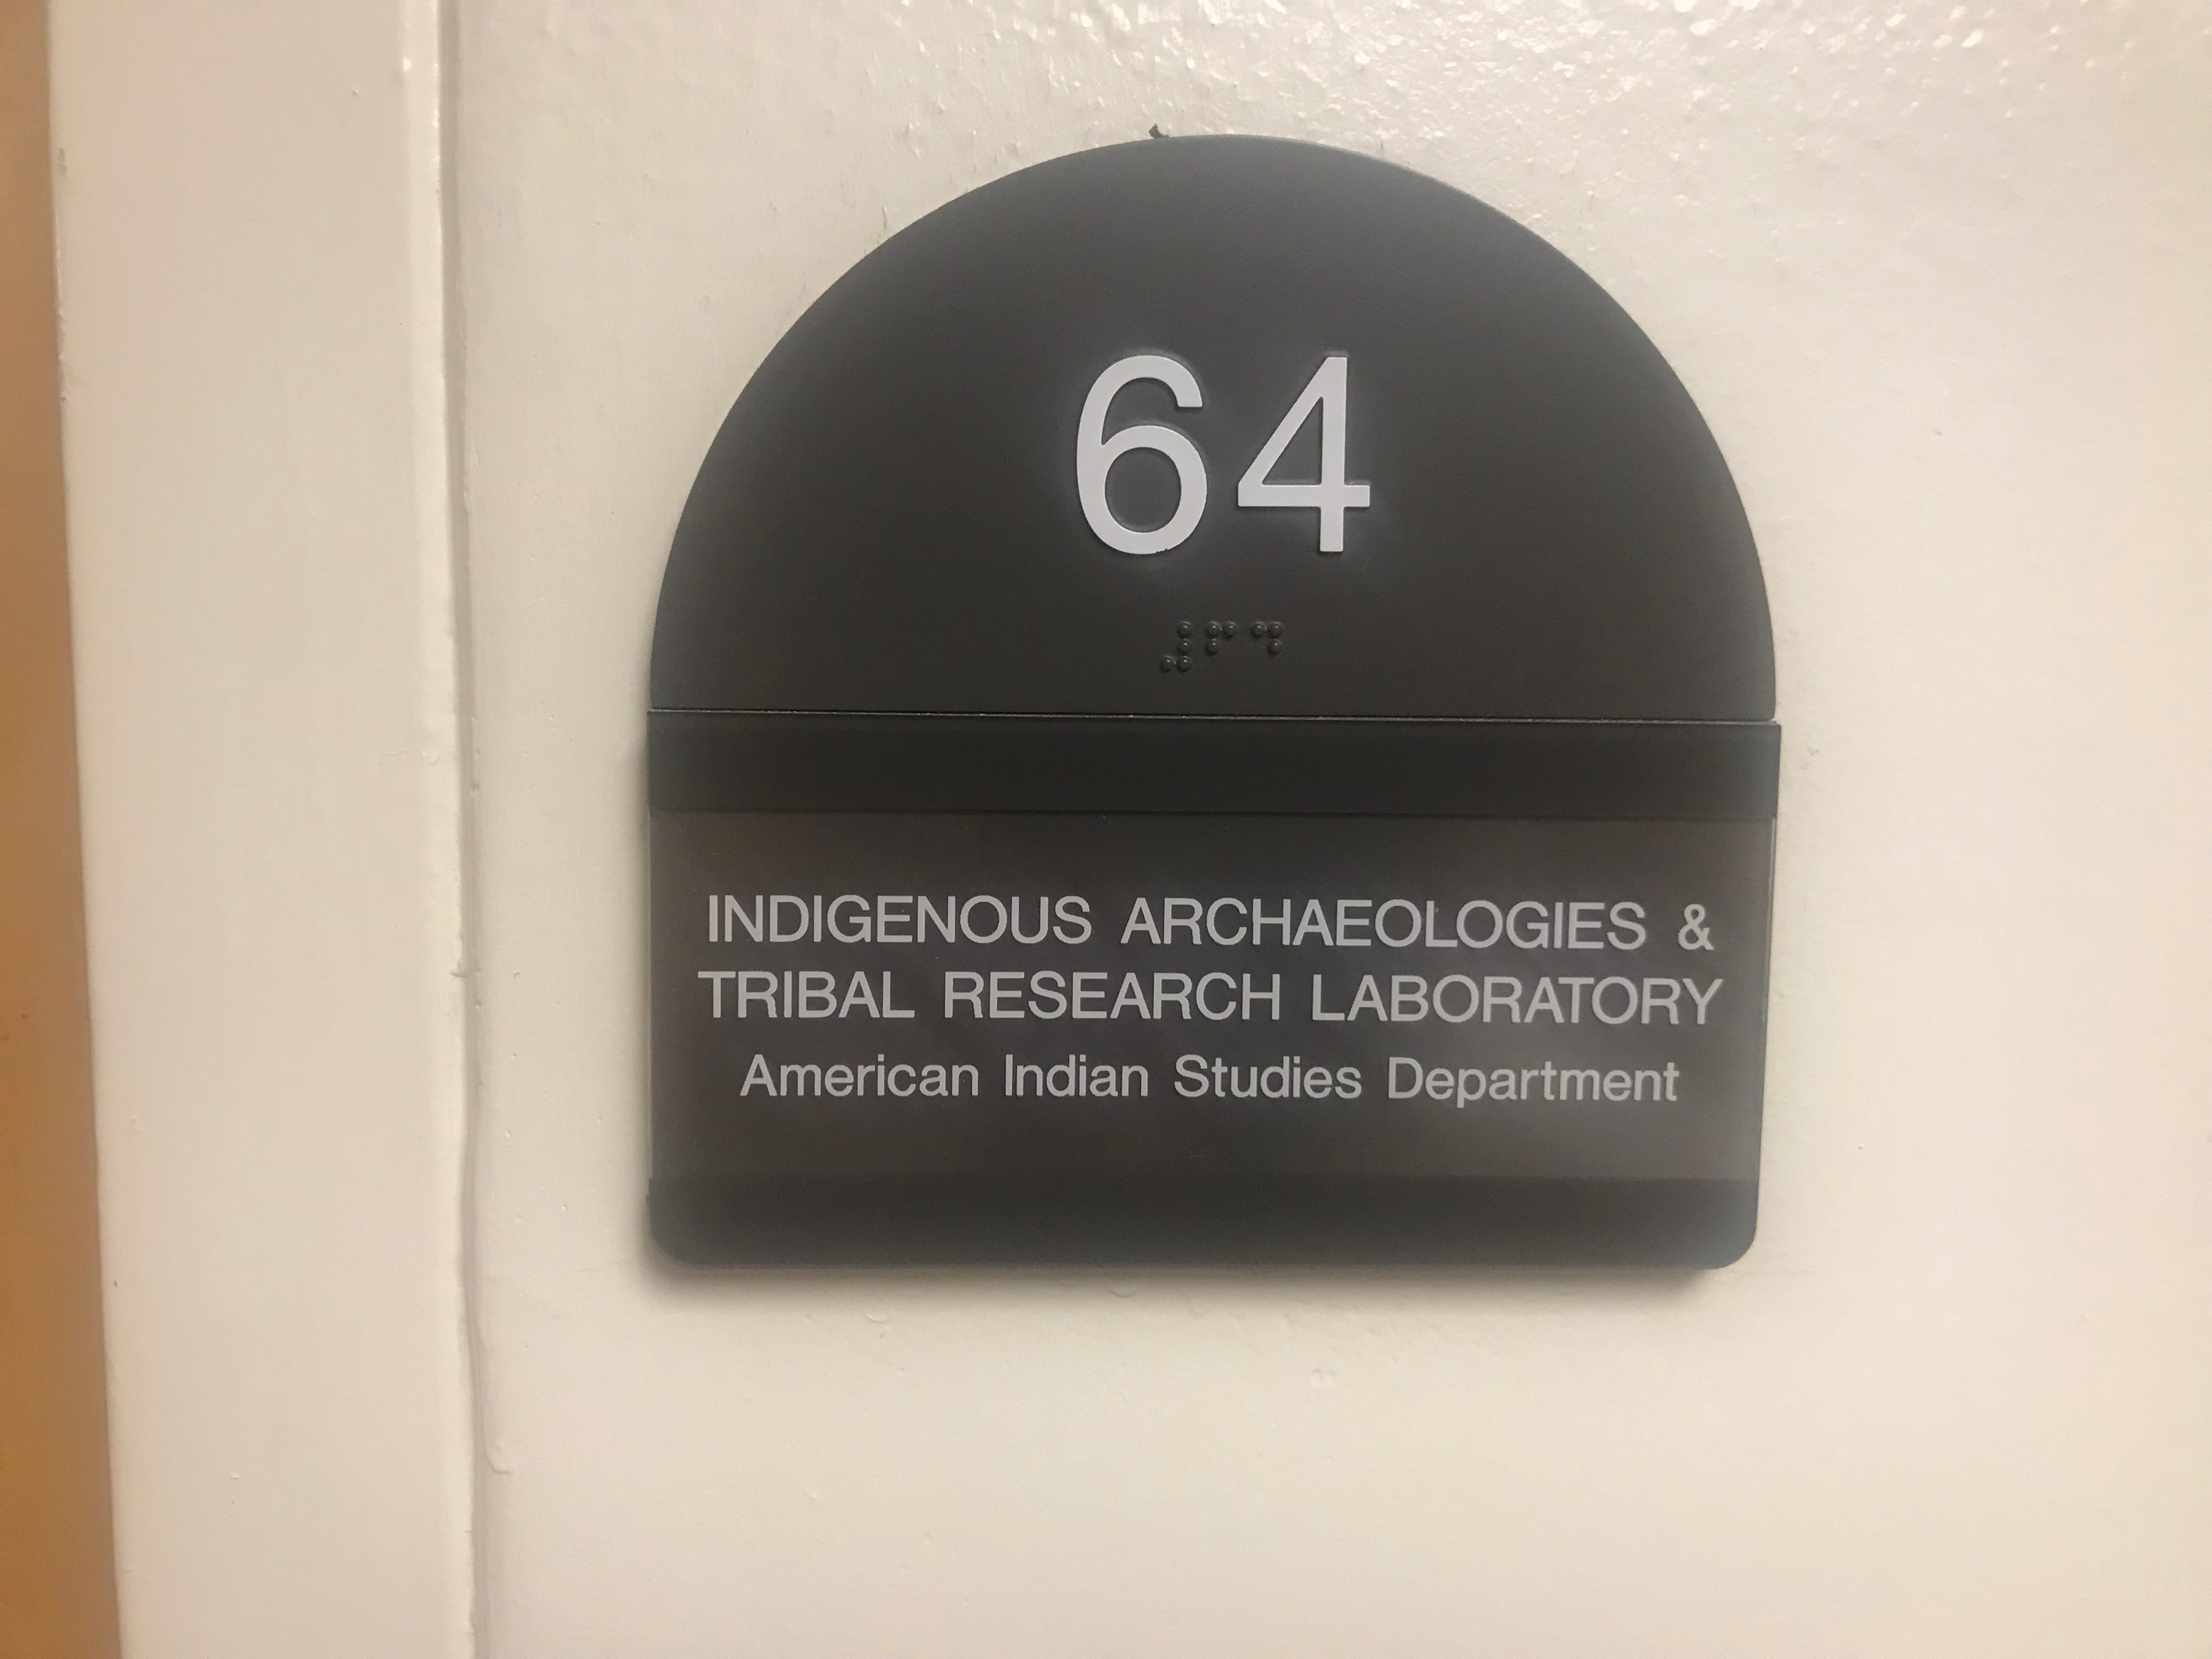 New lab space for American Indian Studies